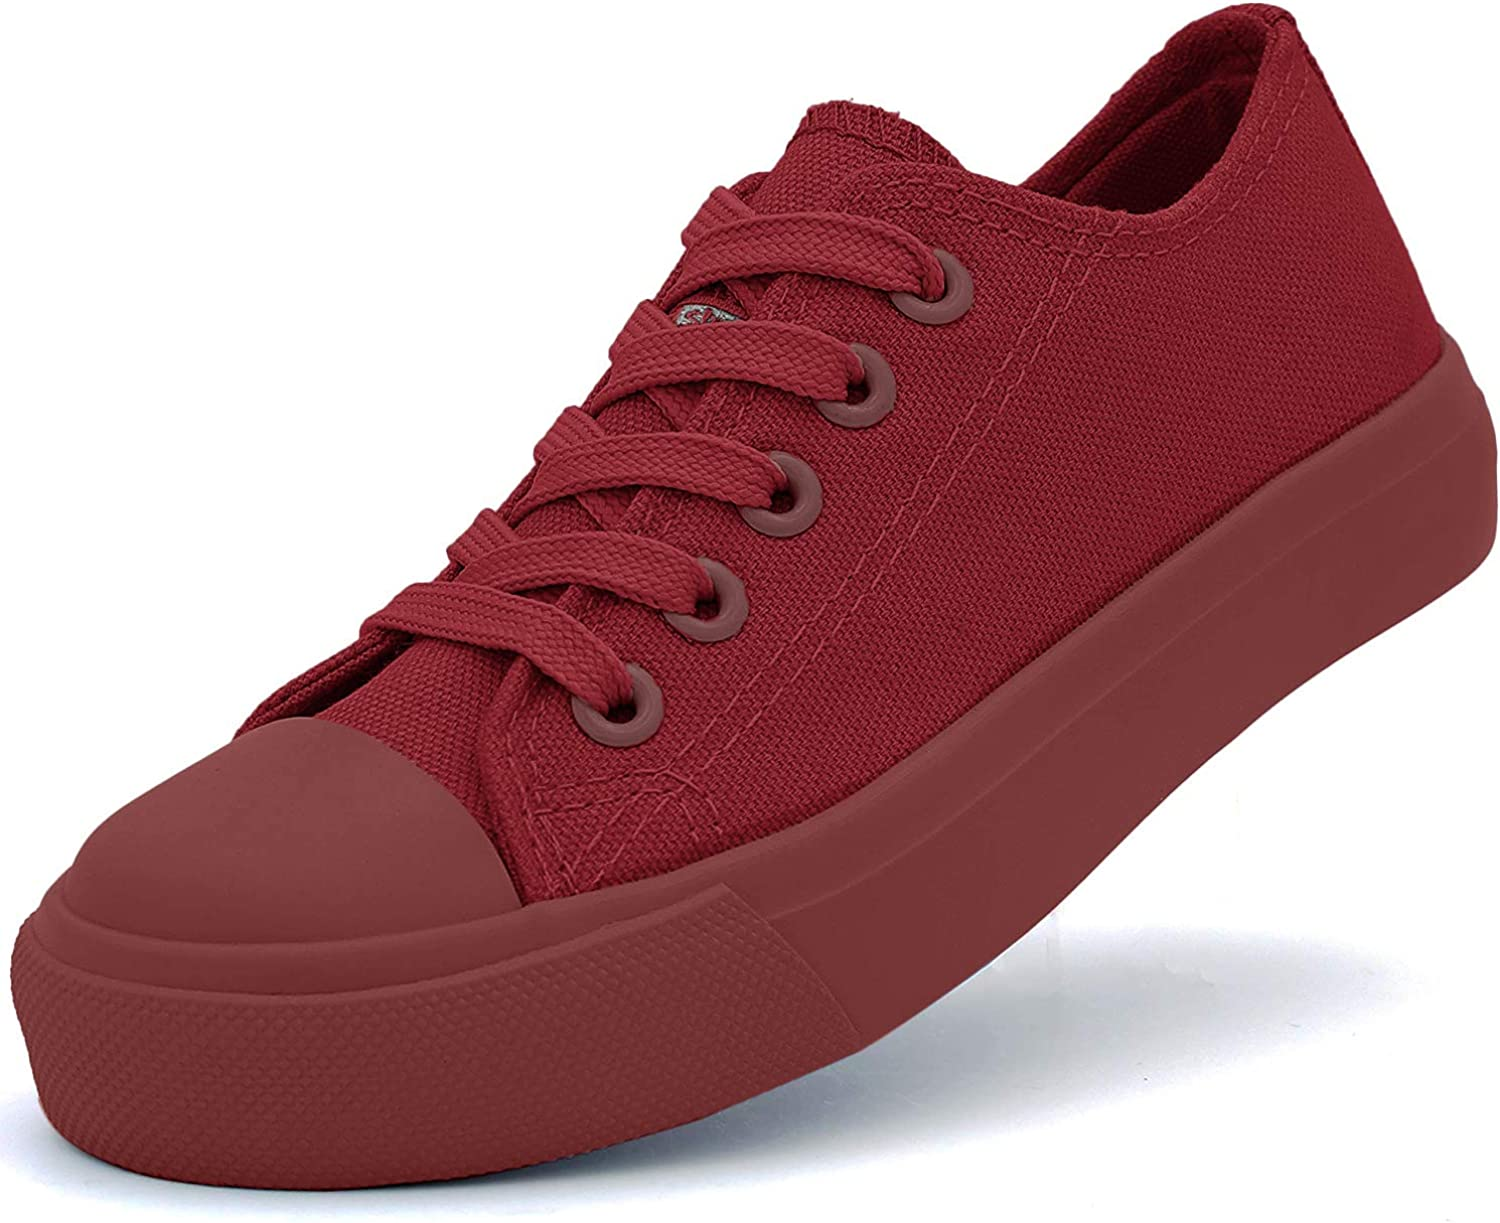 Kid's Unisex Canvas Shoes Sneakers